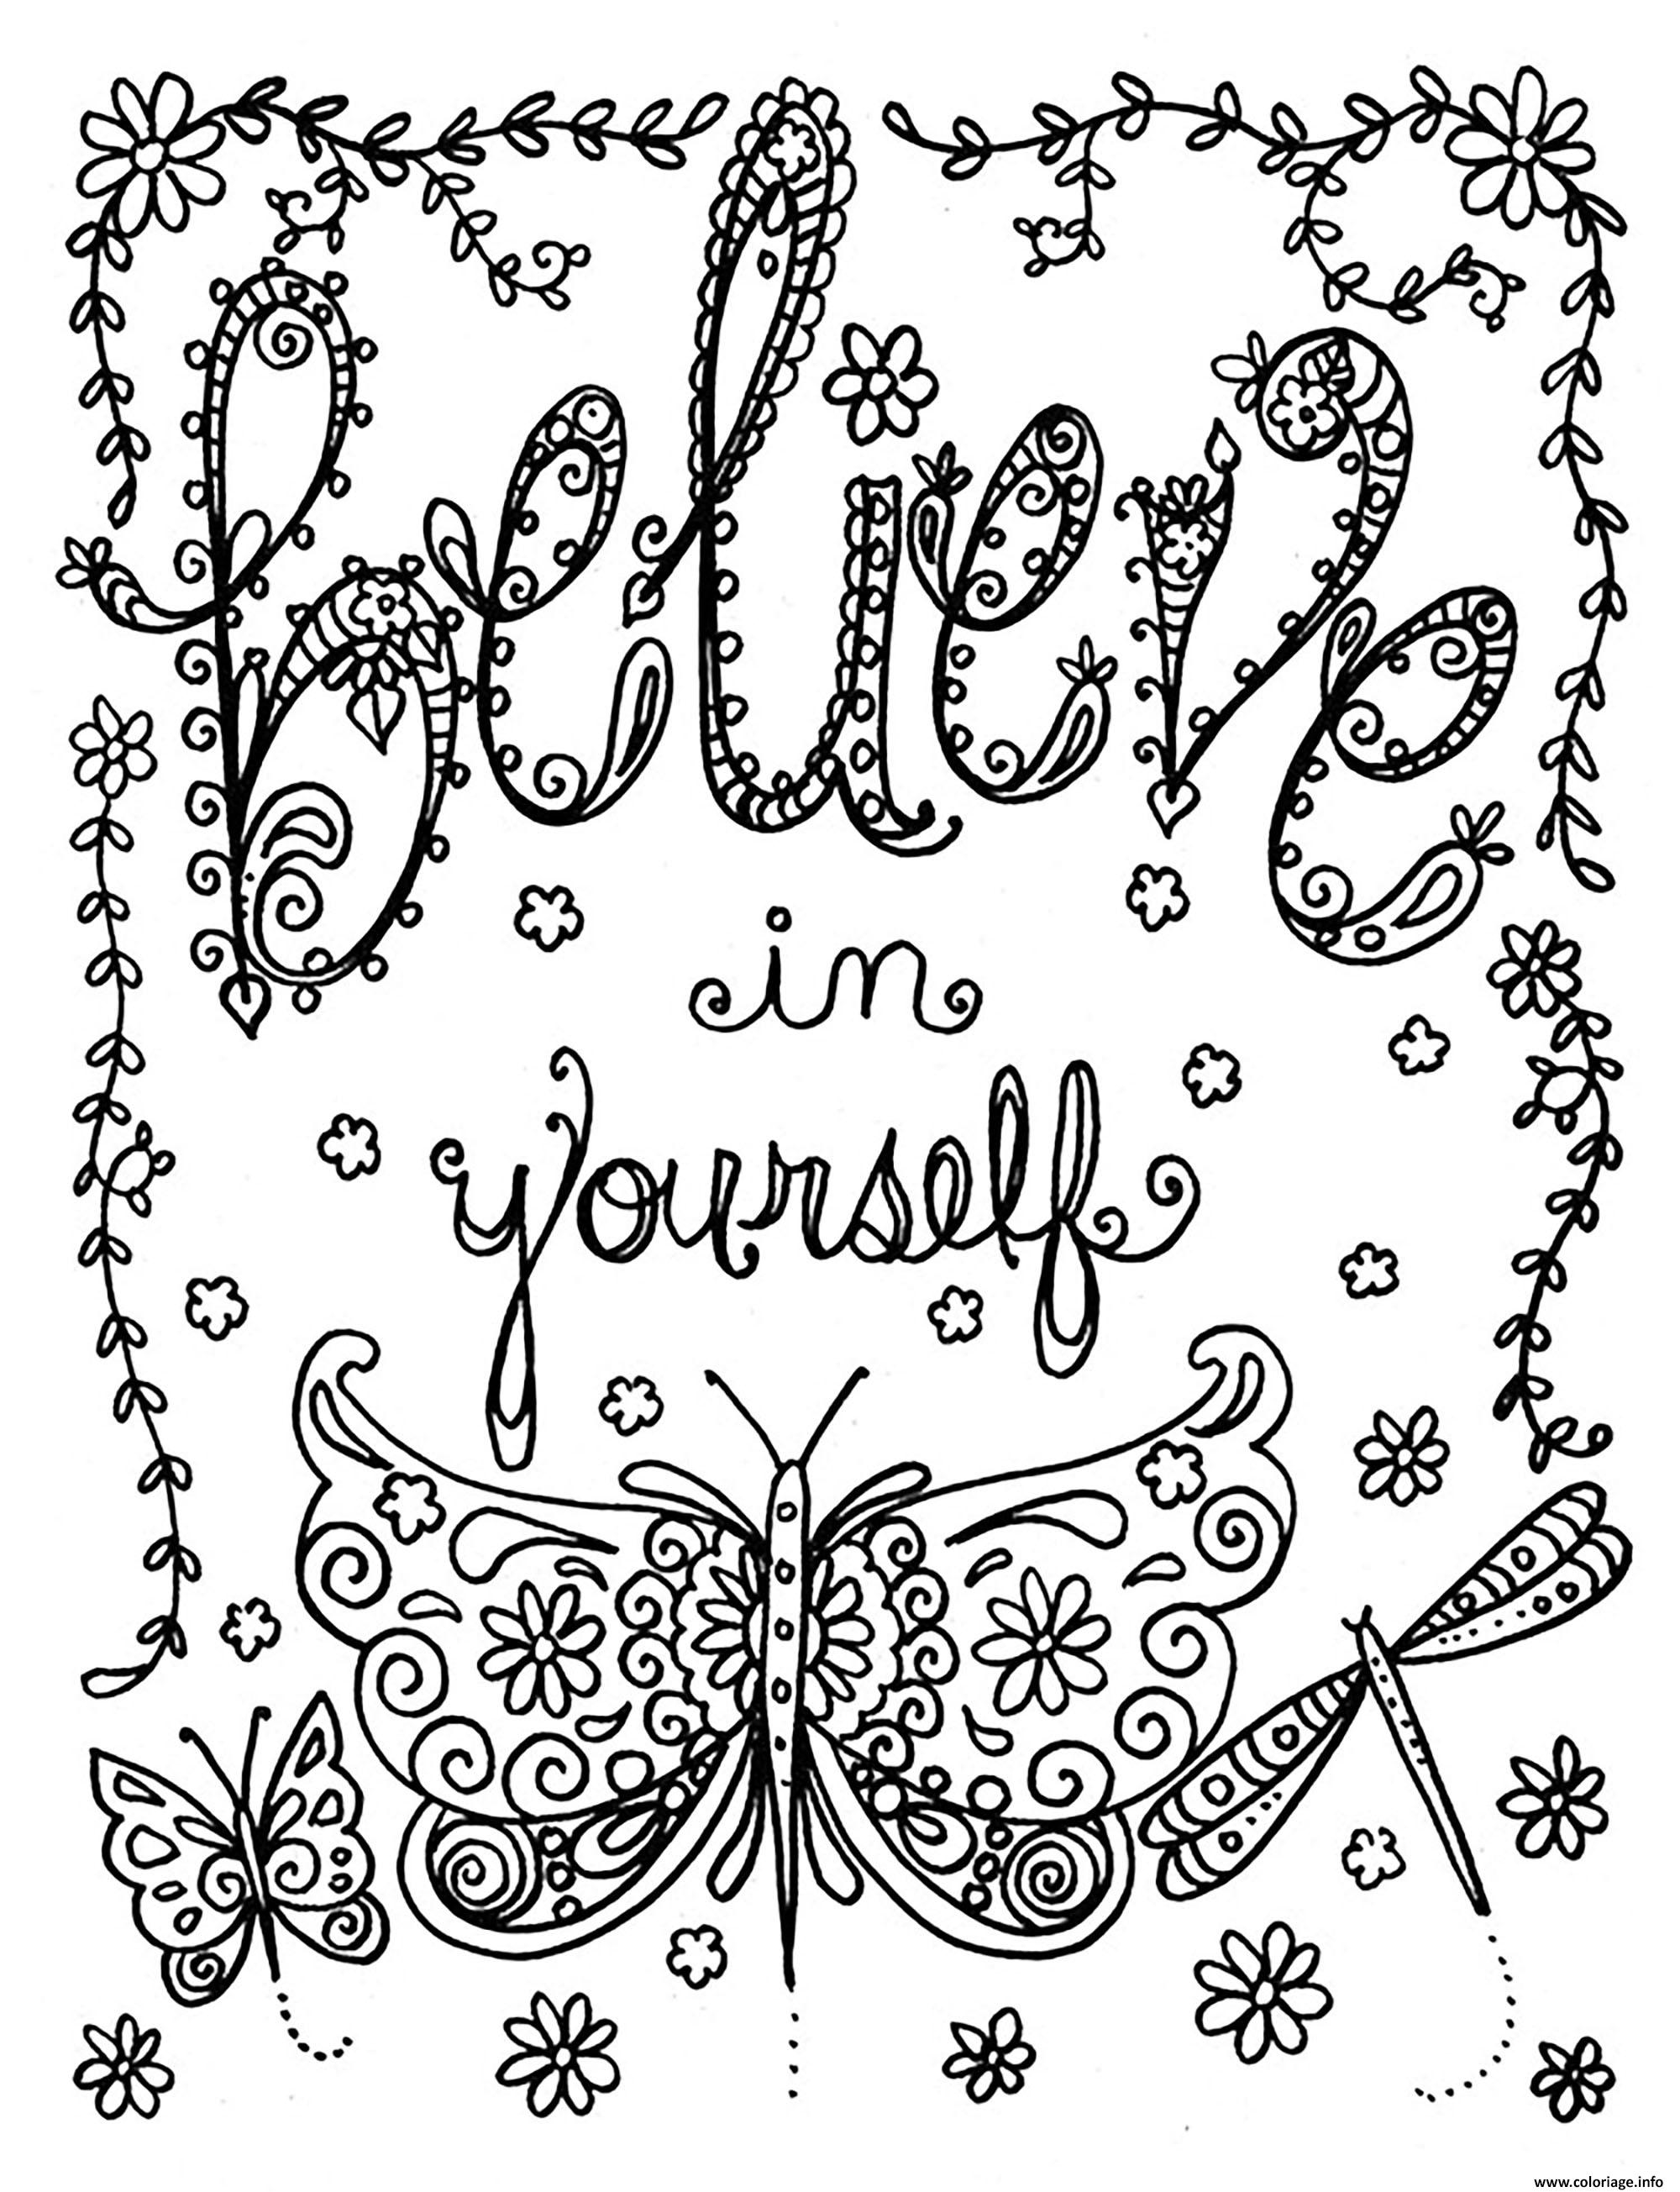 Dessin adulte believe in yourself par deborah muller Coloriage Gratuit à Imprimer